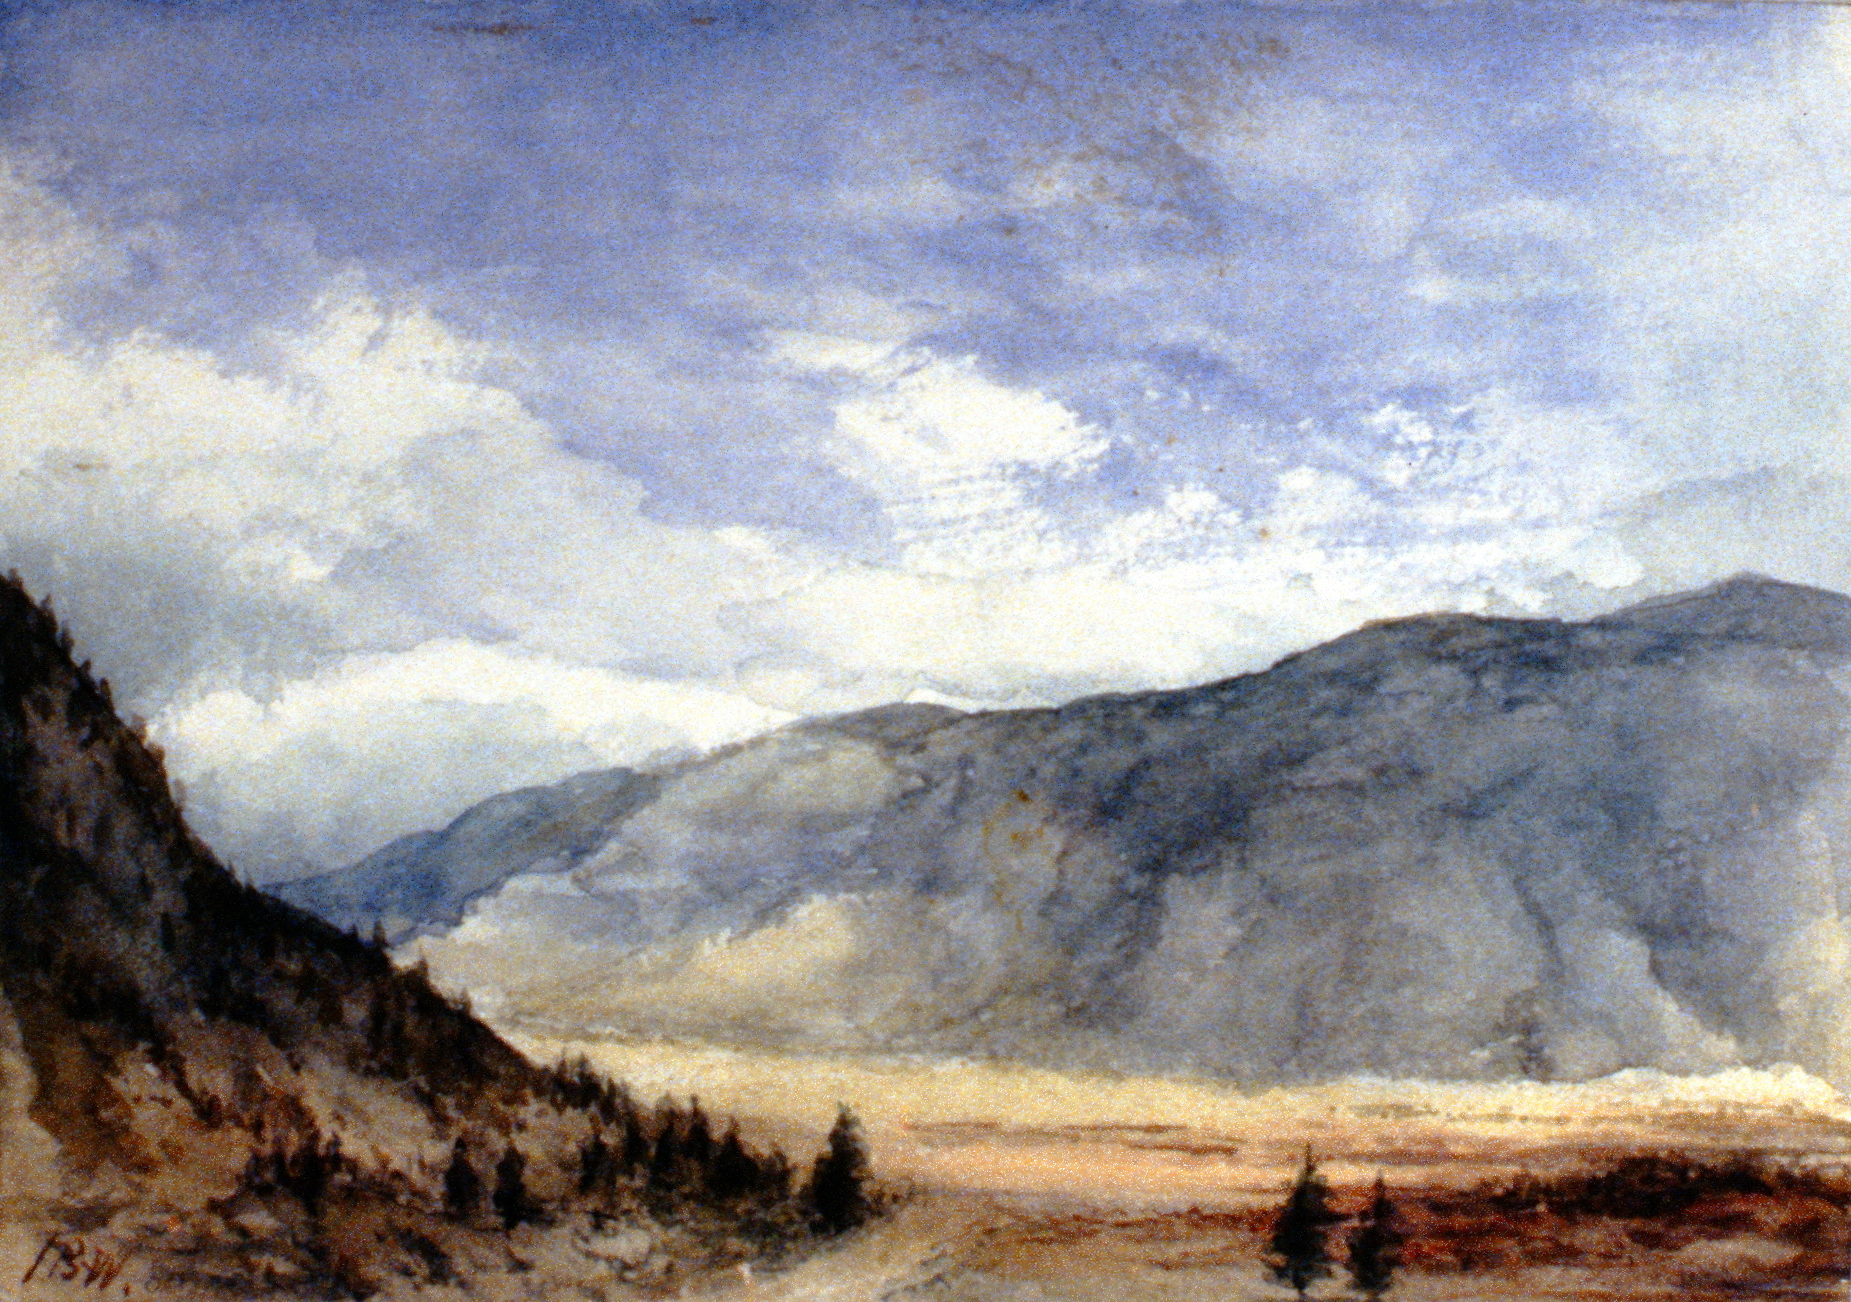 Untitled (Looking South to Cawston), 1895, Julia Bullock-Webster, watercolour on paper, 17.5 x 25 cm, 1983.02.04.  Gift of Mrs. Barbara Steel.